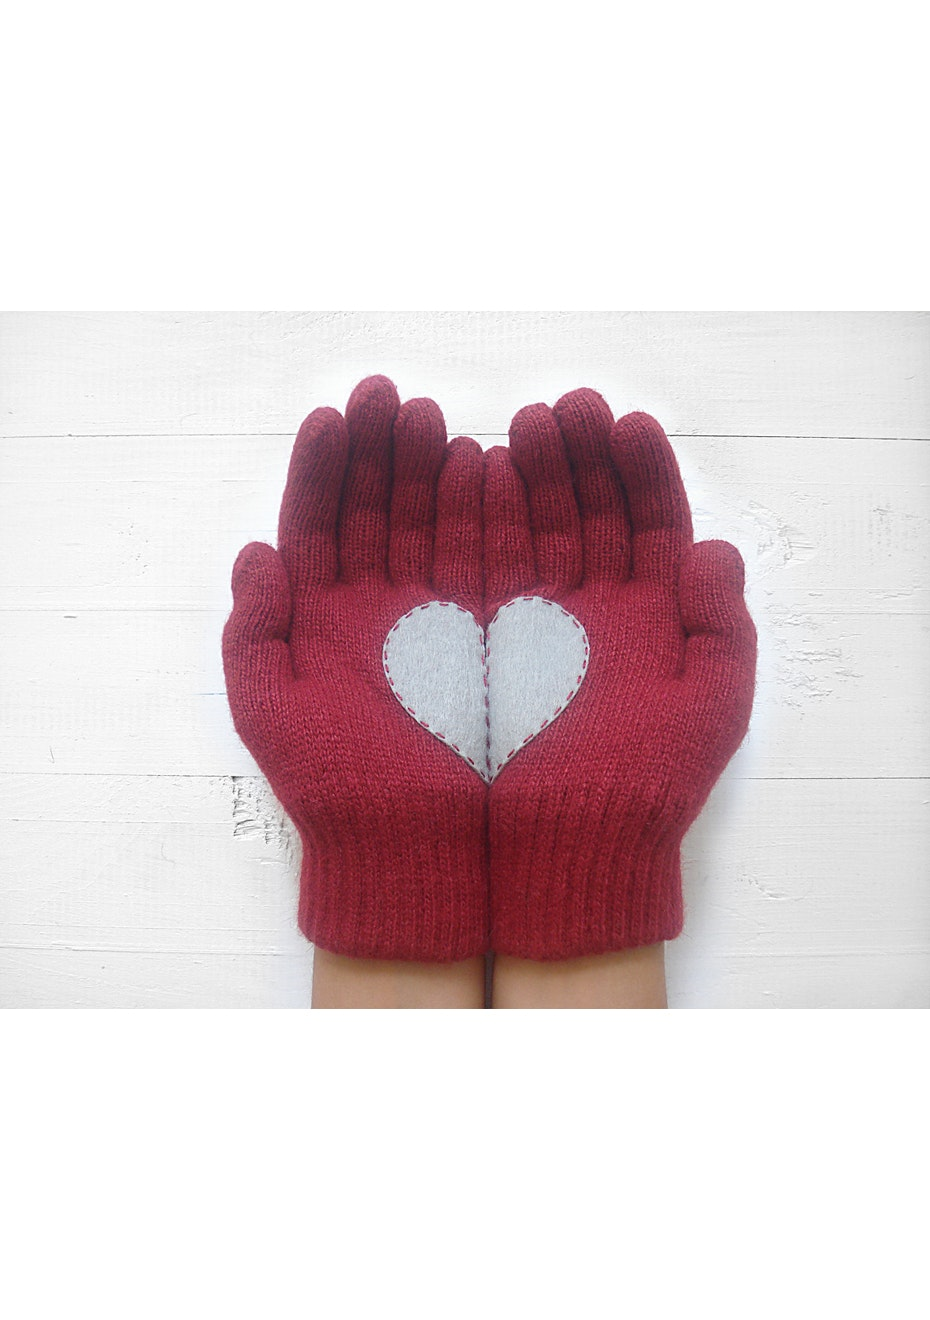 Heart Gloves - Deep Red/Silver